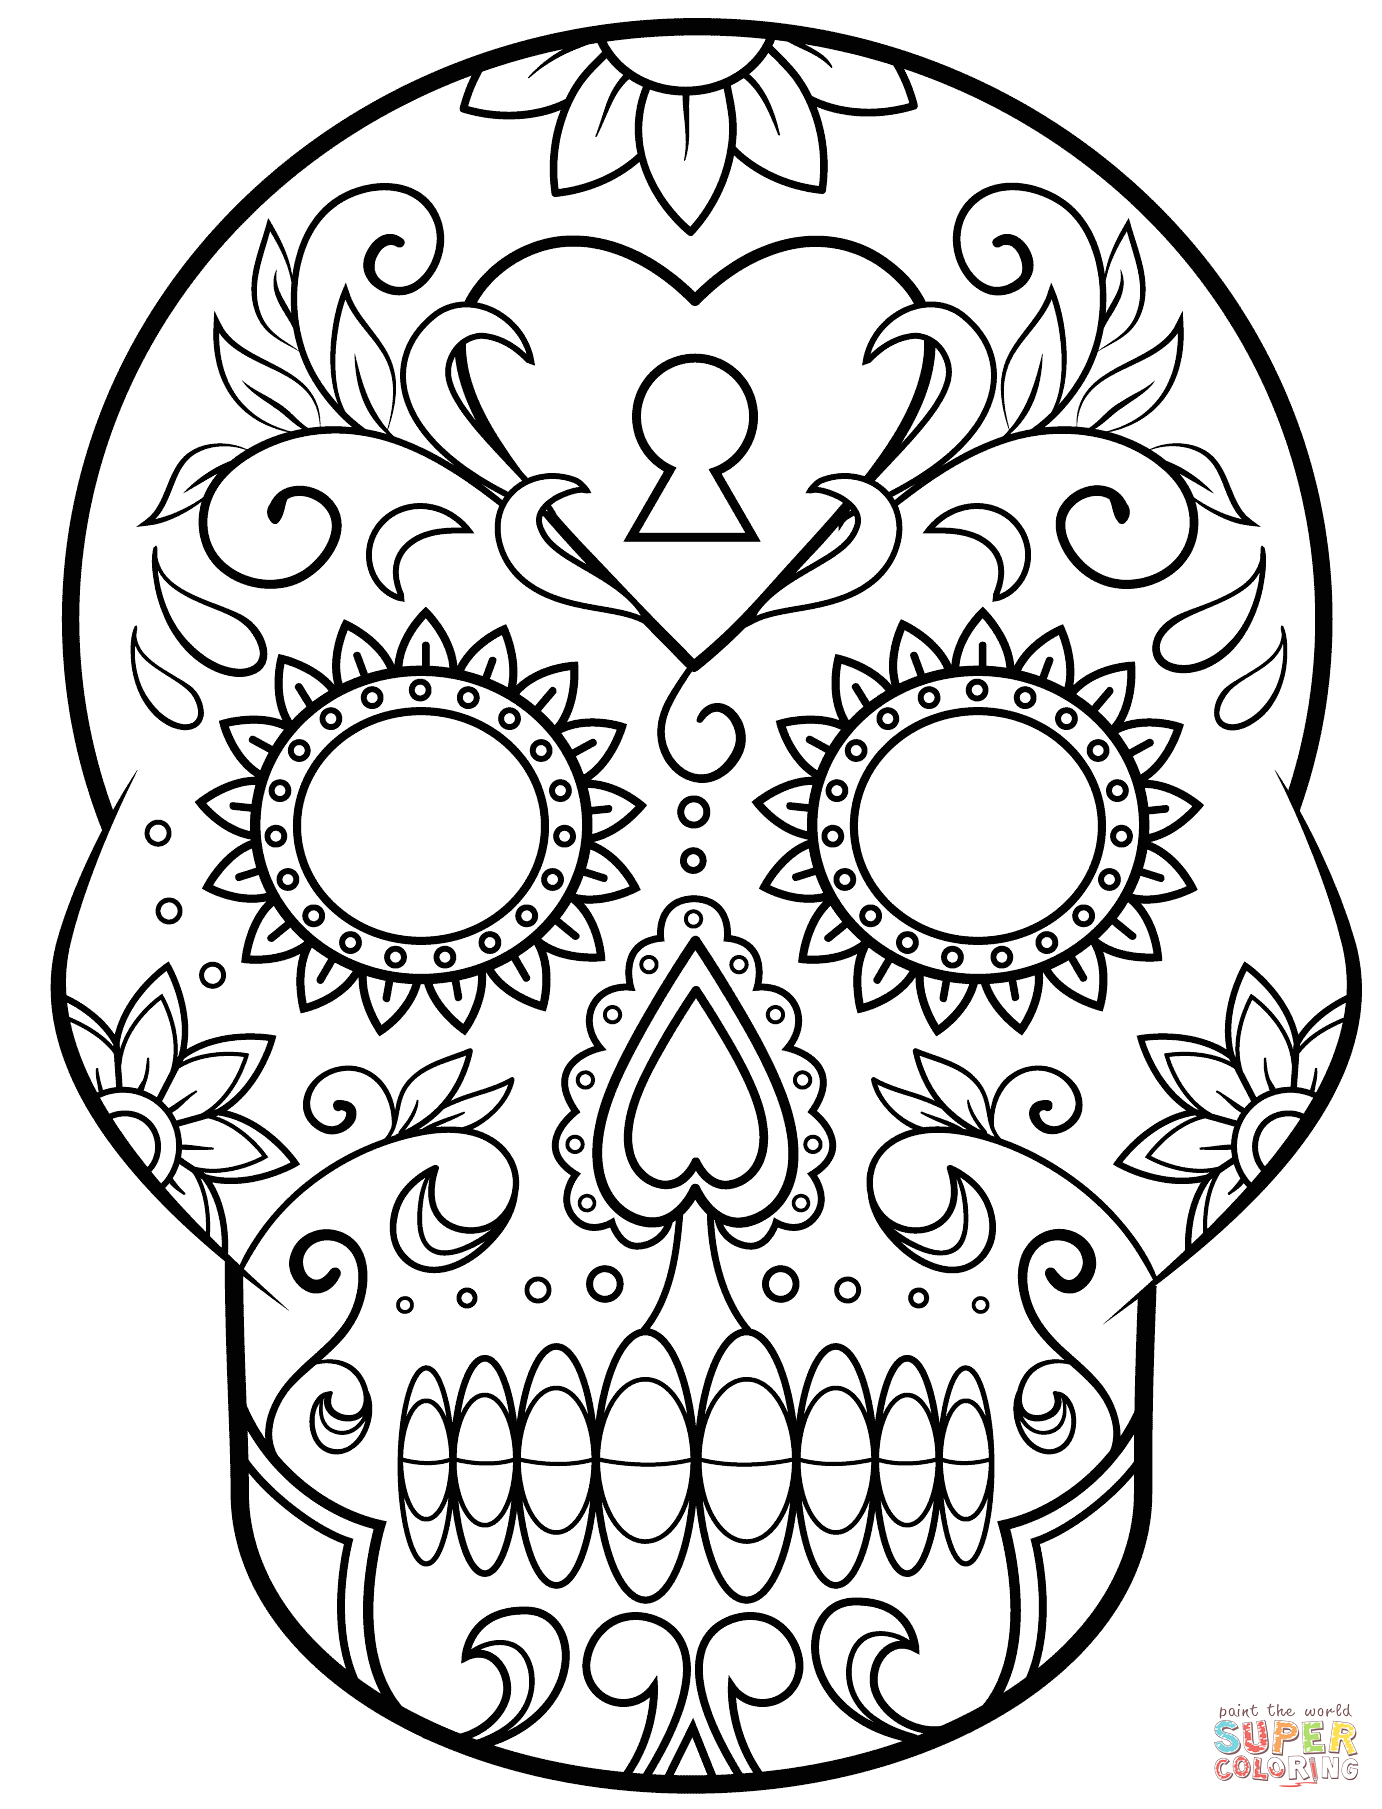 Day Of the Dead Sugar Skull Coloring Page Day Of the Dead Sugar Skull Coloring Page